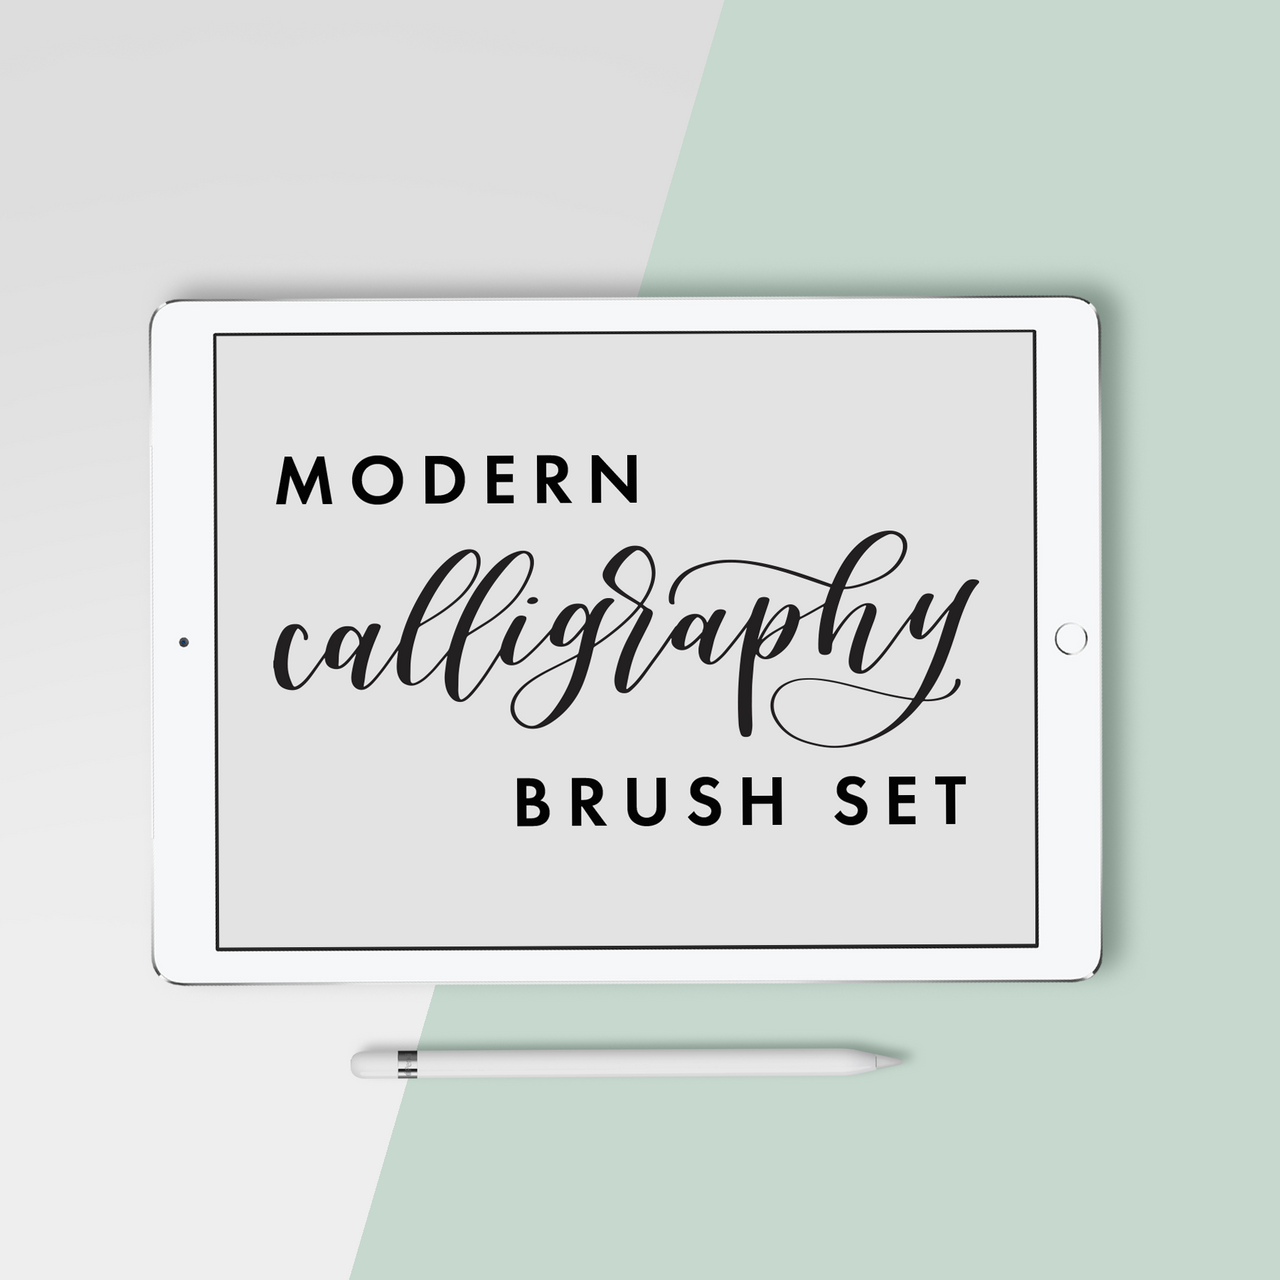 Modern Calligraphy Procreate Brush Set - Hewitt Avenue